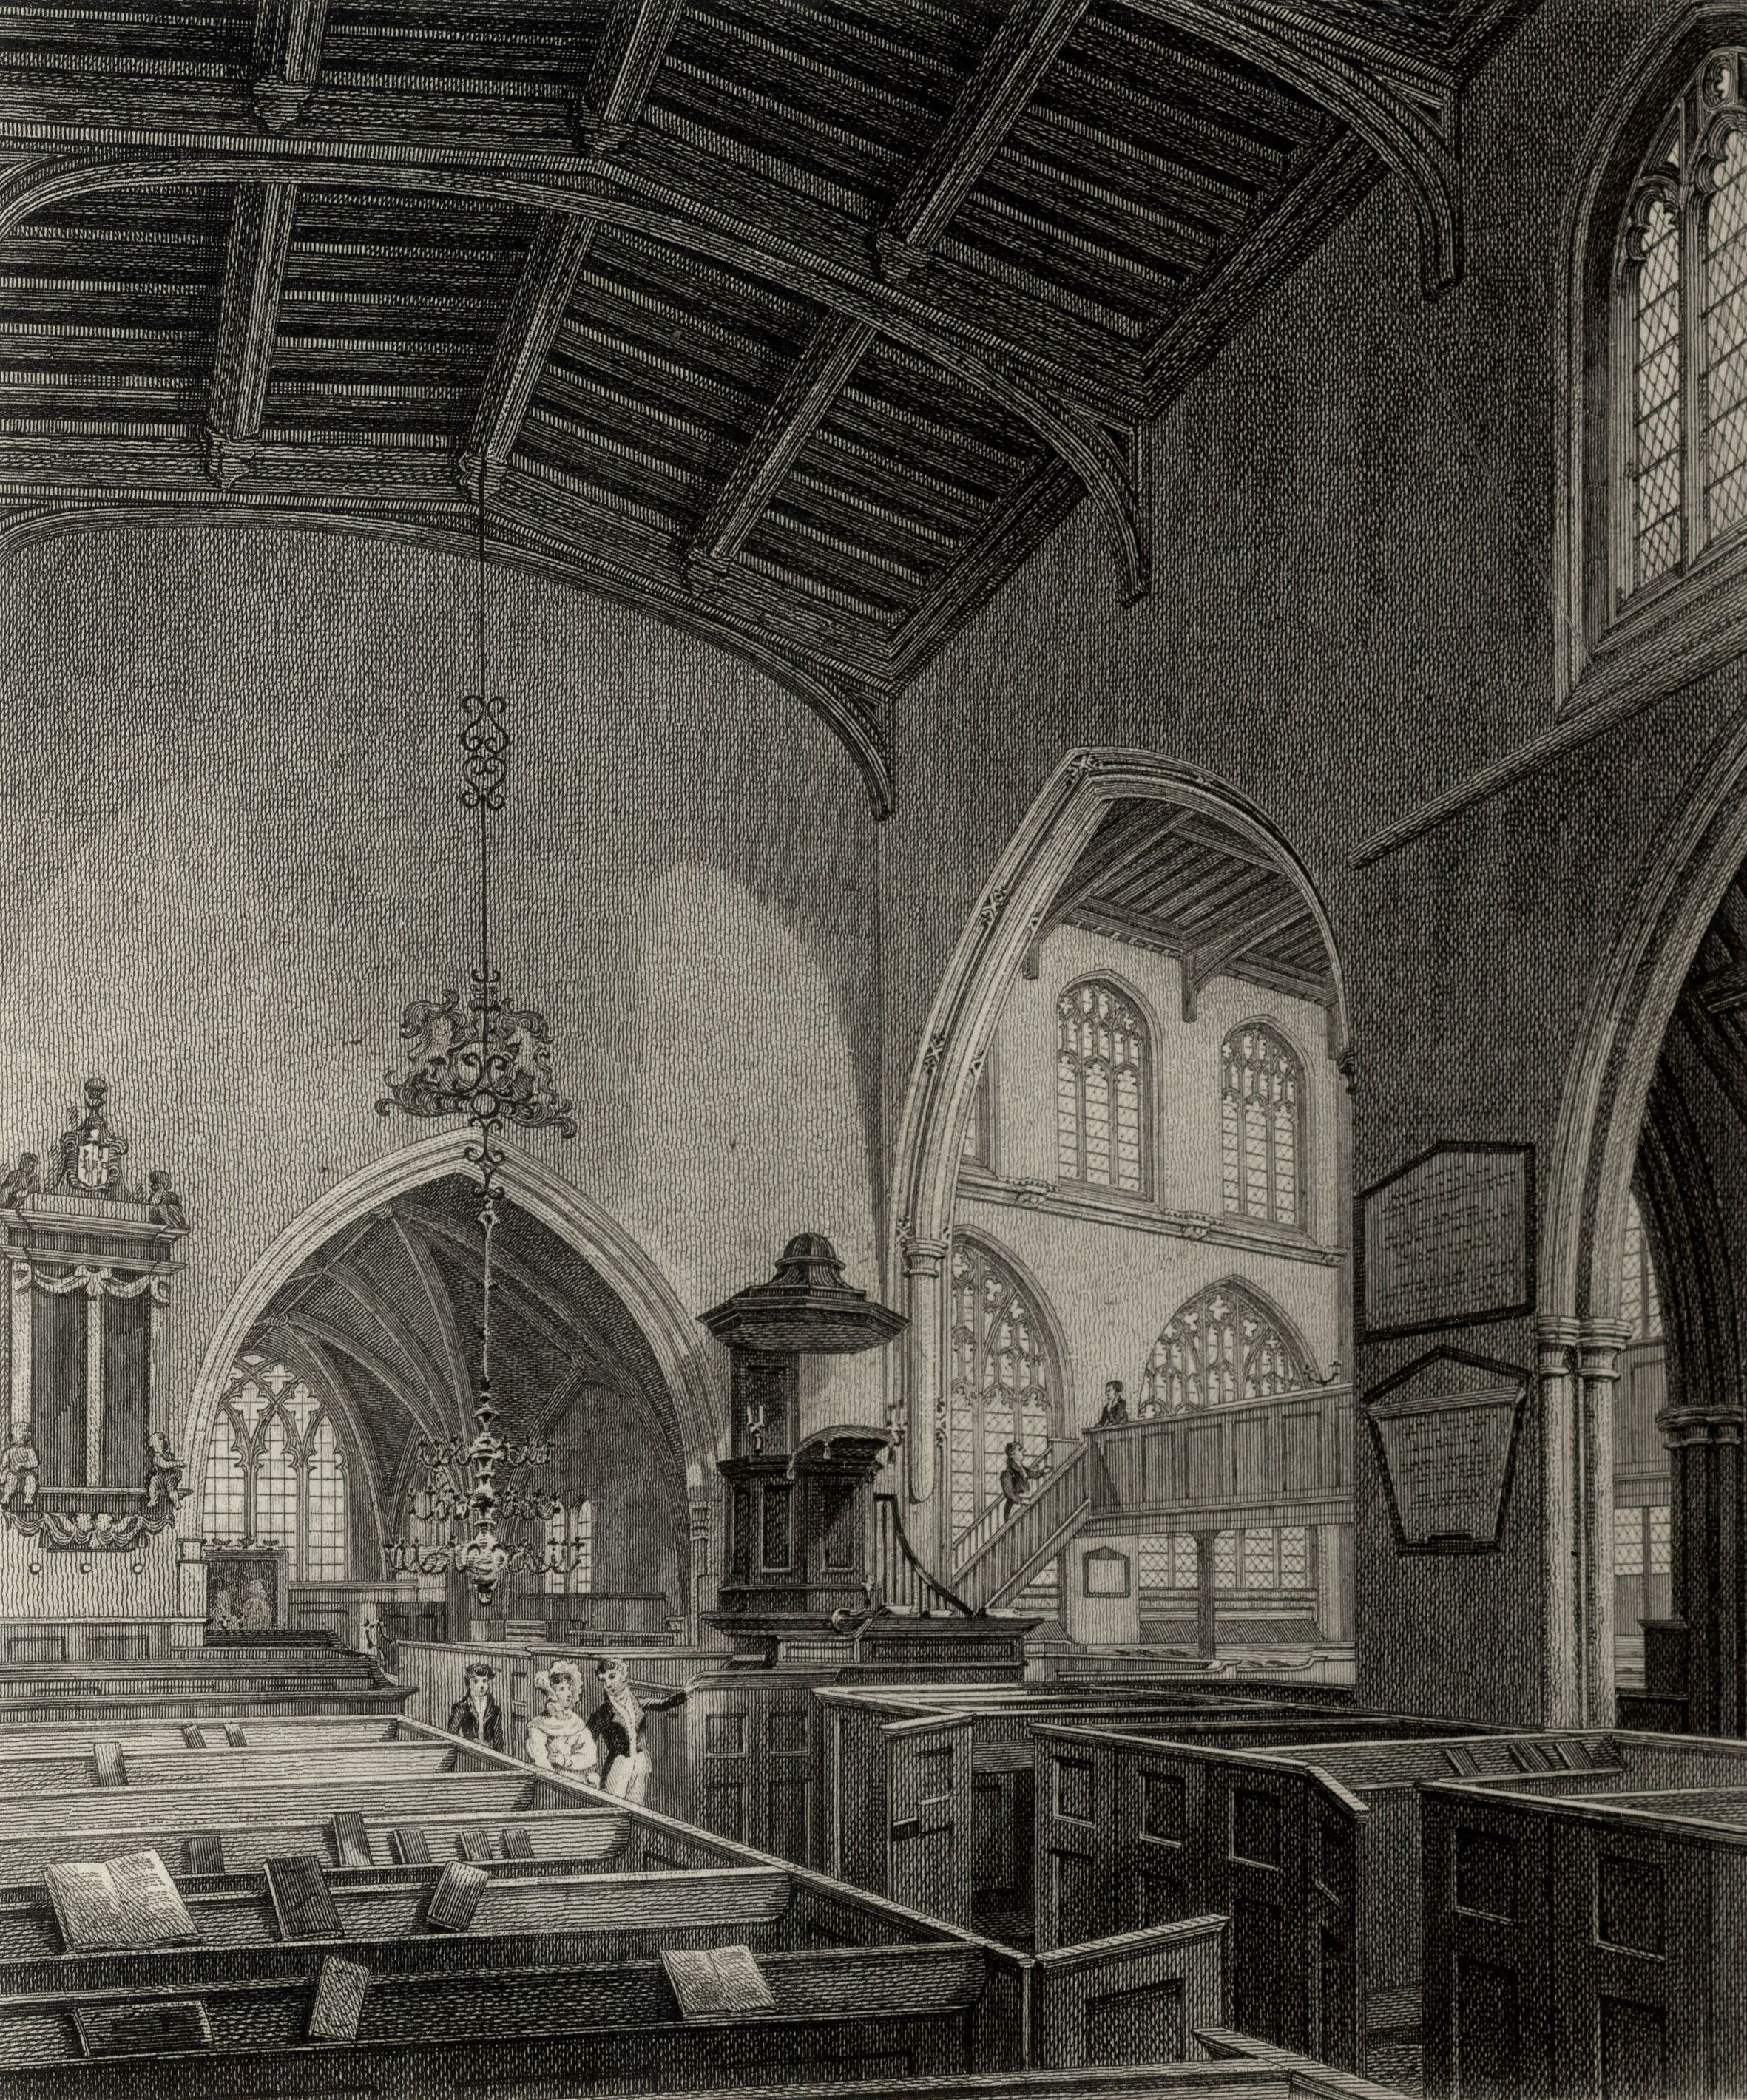 Holy Trinity church, interior. (Cooper's Memorials Trinity interior in Simeon's time vol 3 p.375)